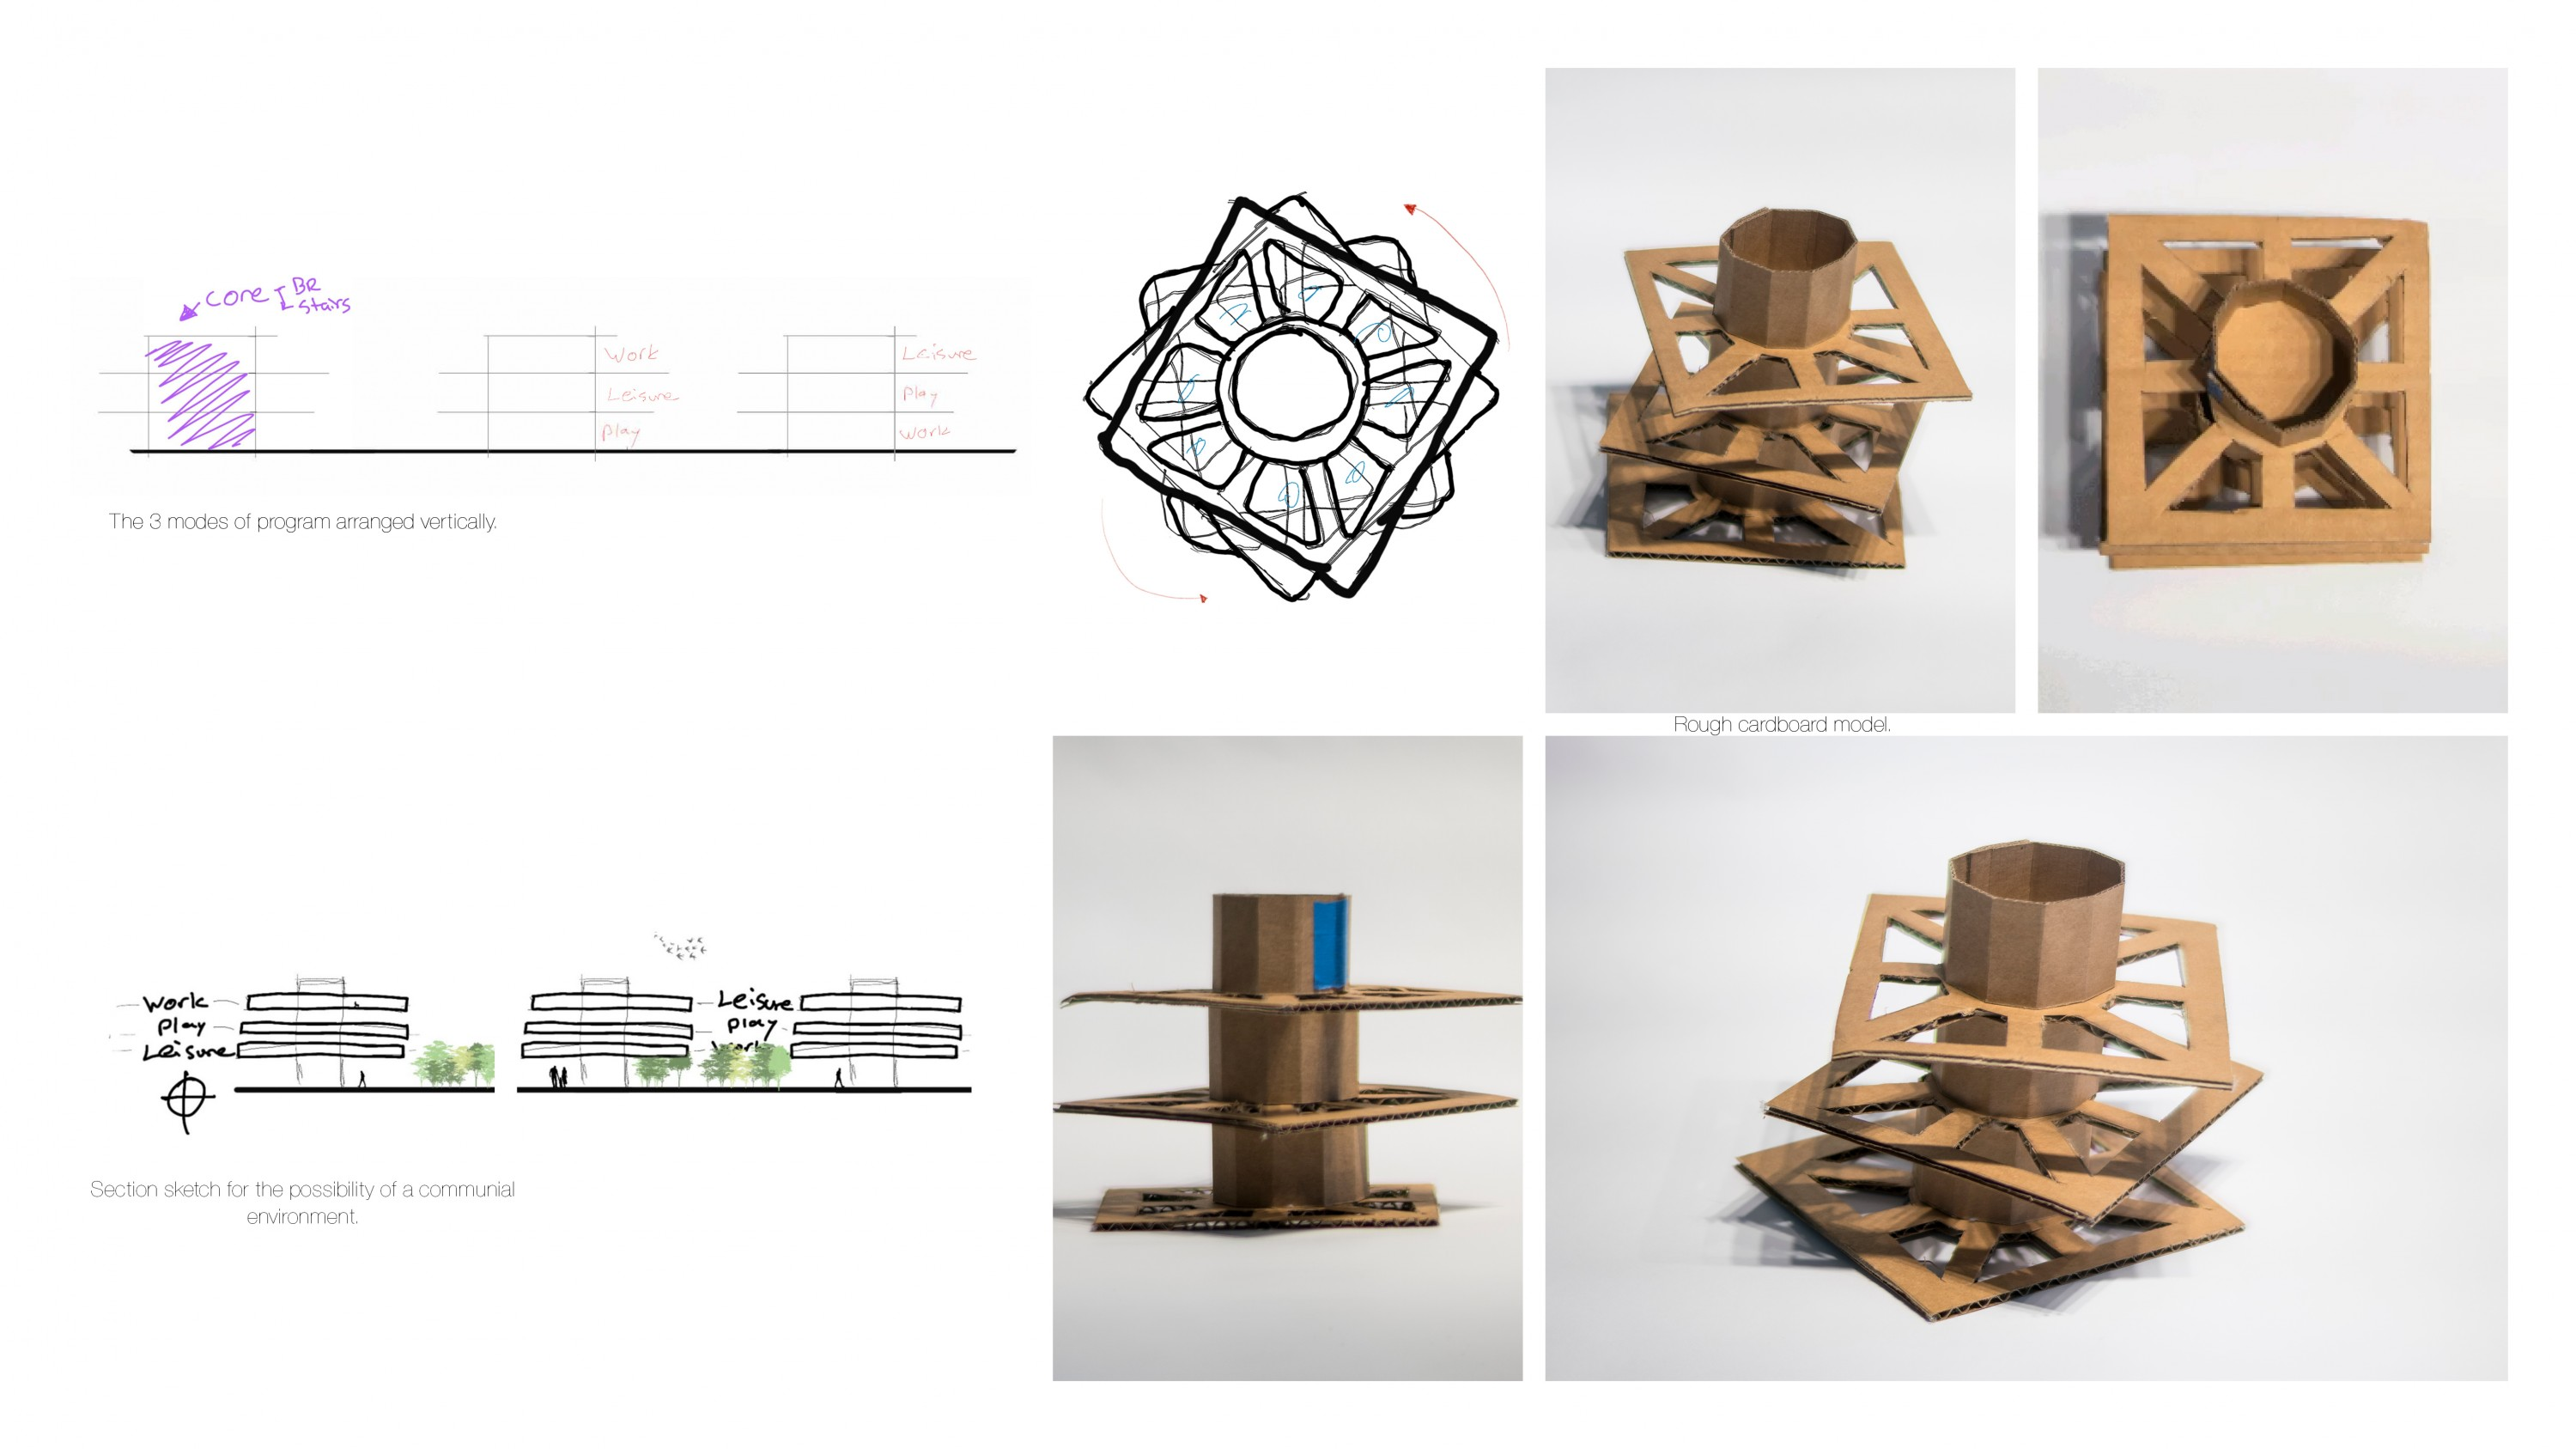 Rough Cardboard Model including a diagram of three modes of the program and a sketch of a communal environment